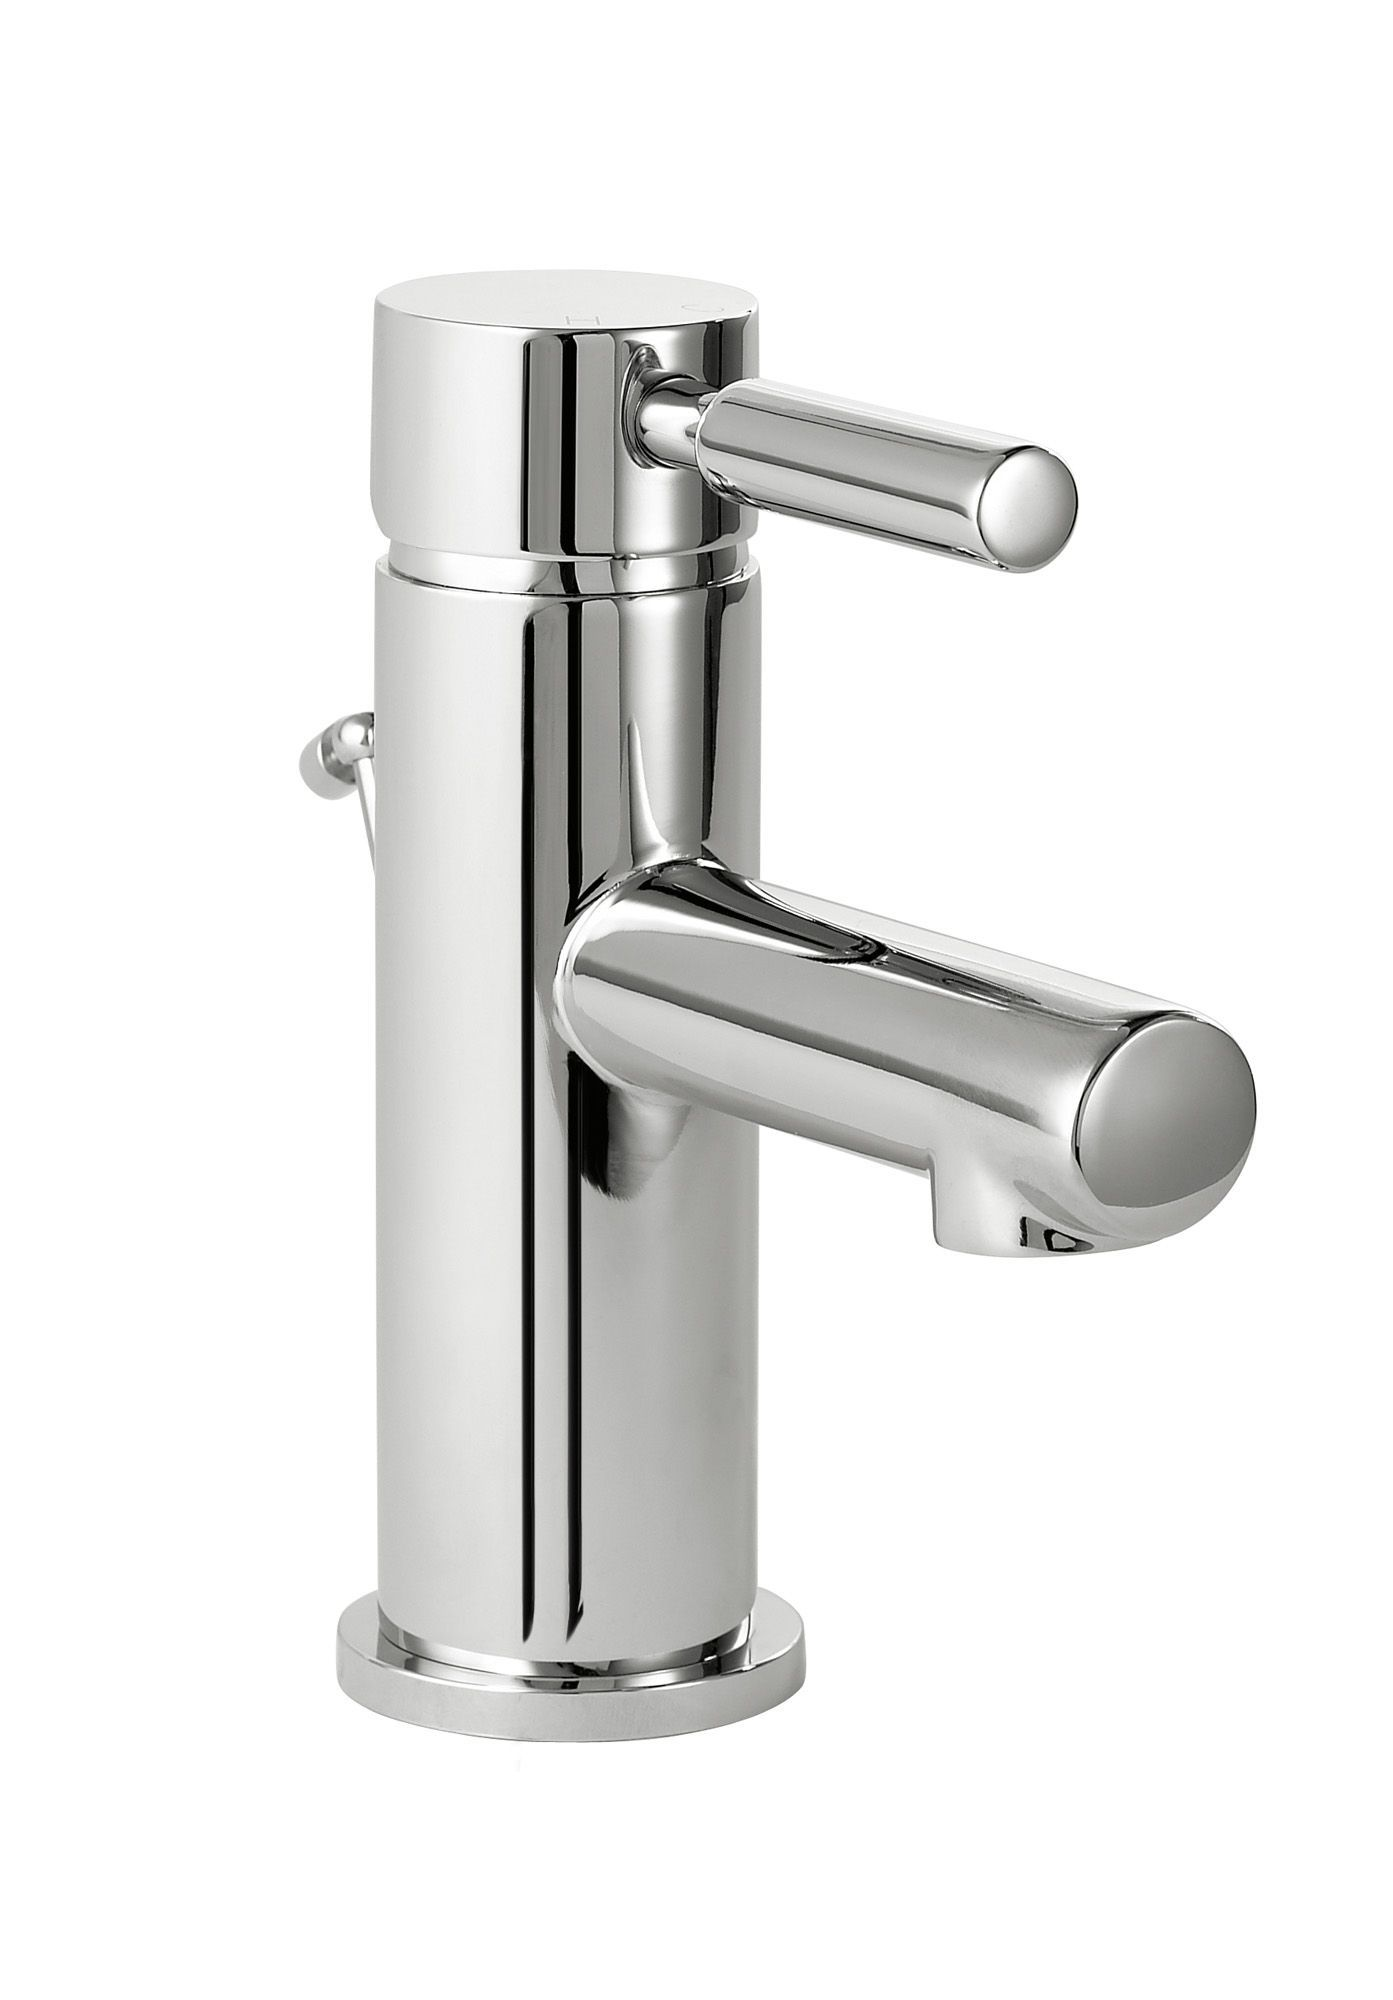 cooke lewis cirque 1 lever basin mixer tap departments tradepoint. Black Bedroom Furniture Sets. Home Design Ideas